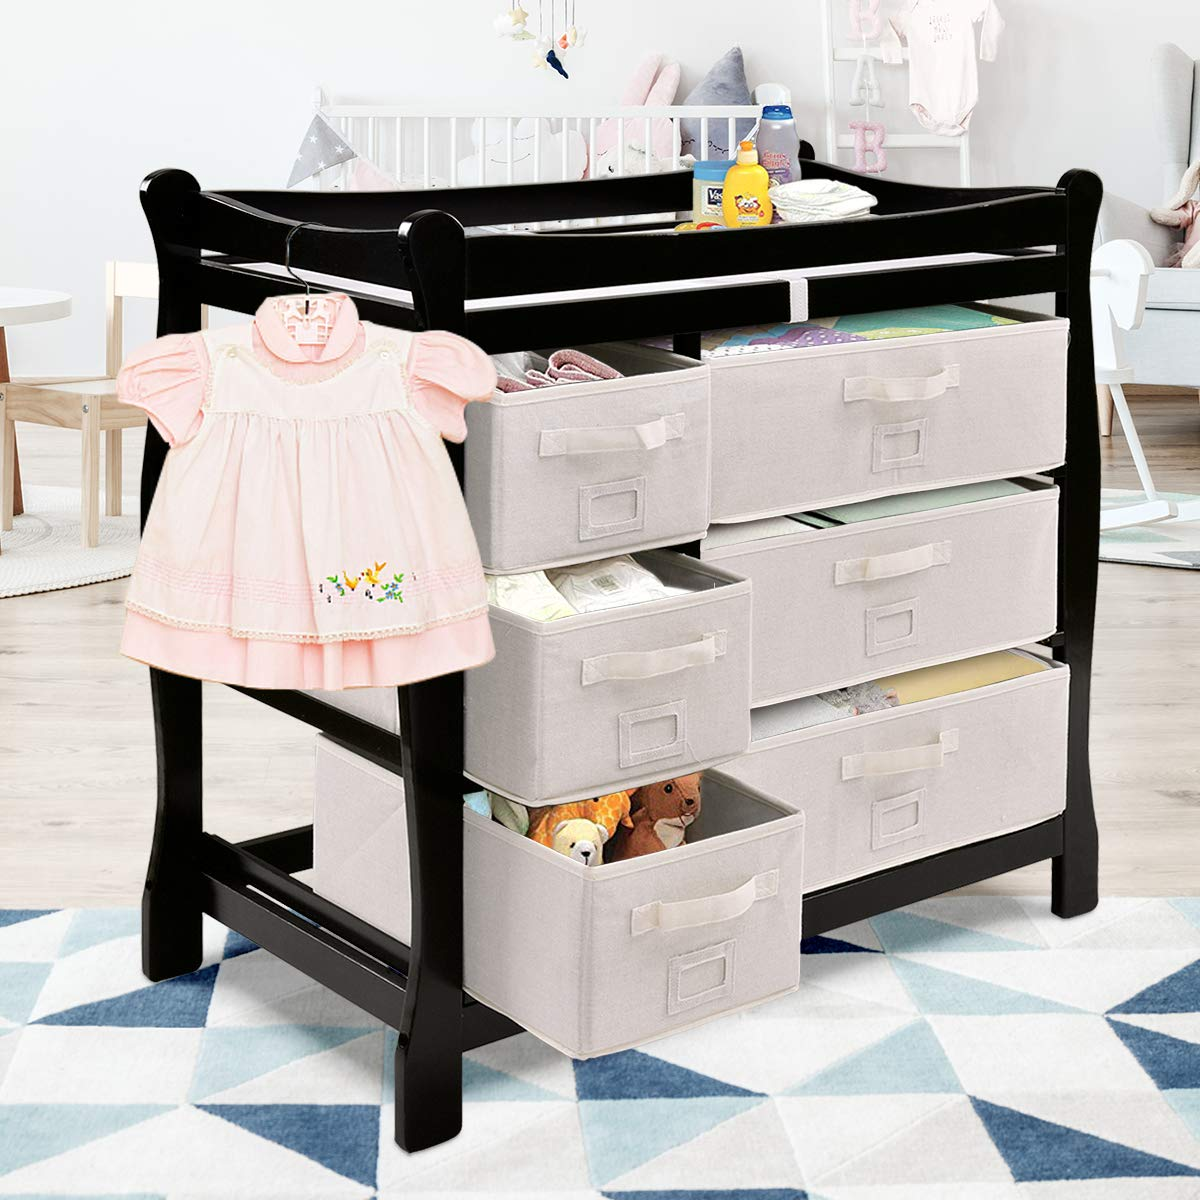 Sleigh Style Nursery Dresser Changing Table with Hamper// 6 Baskets Black Infant Diaper Changing Table Organization Costzon Baby Changing Table Newborn Nursery Station with Pad